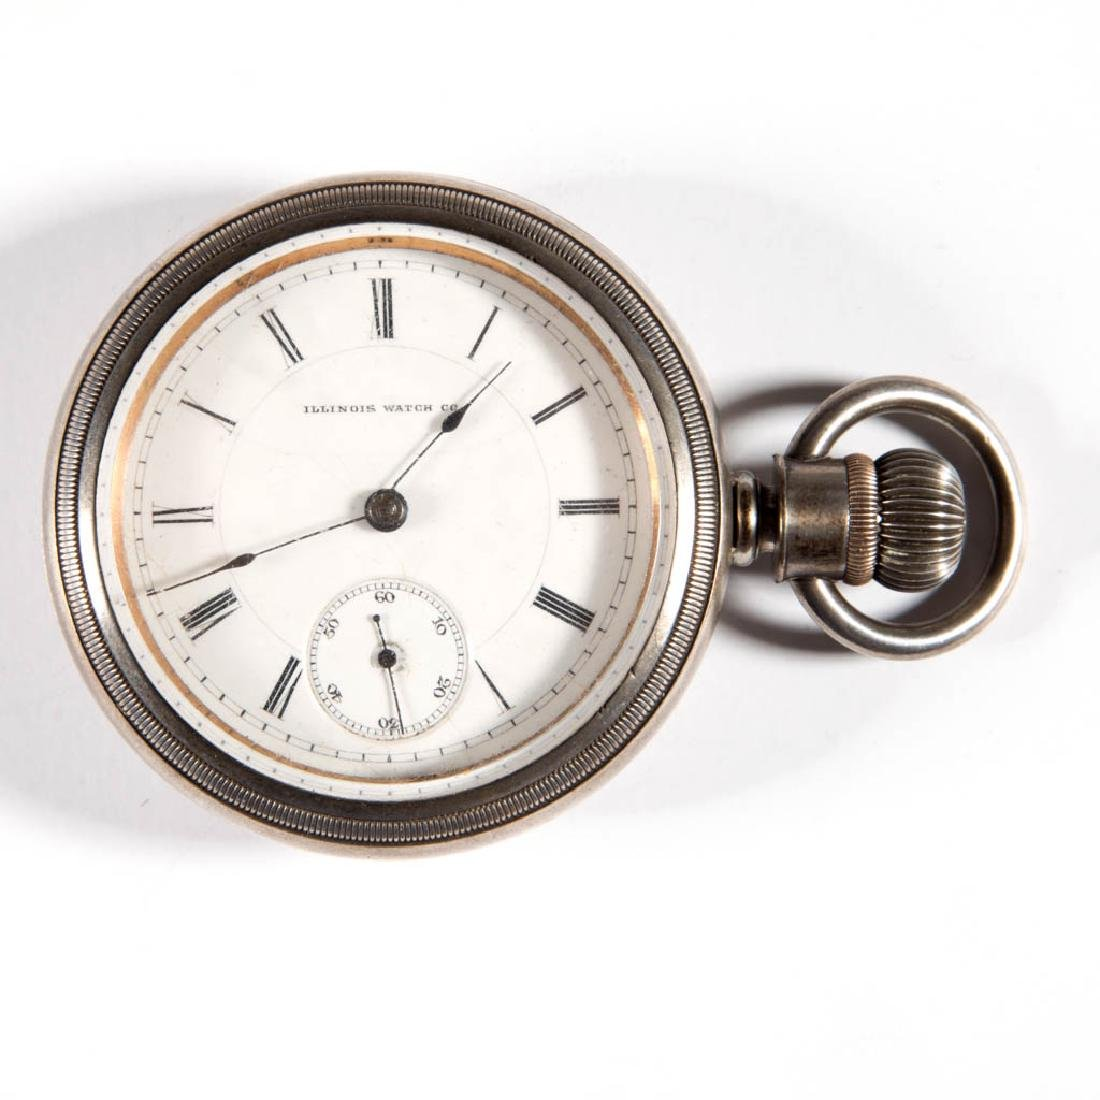 ILLINOIS WATCH CO. 11-JEWEL MODEL 2 MAN'S POCKET WATCH